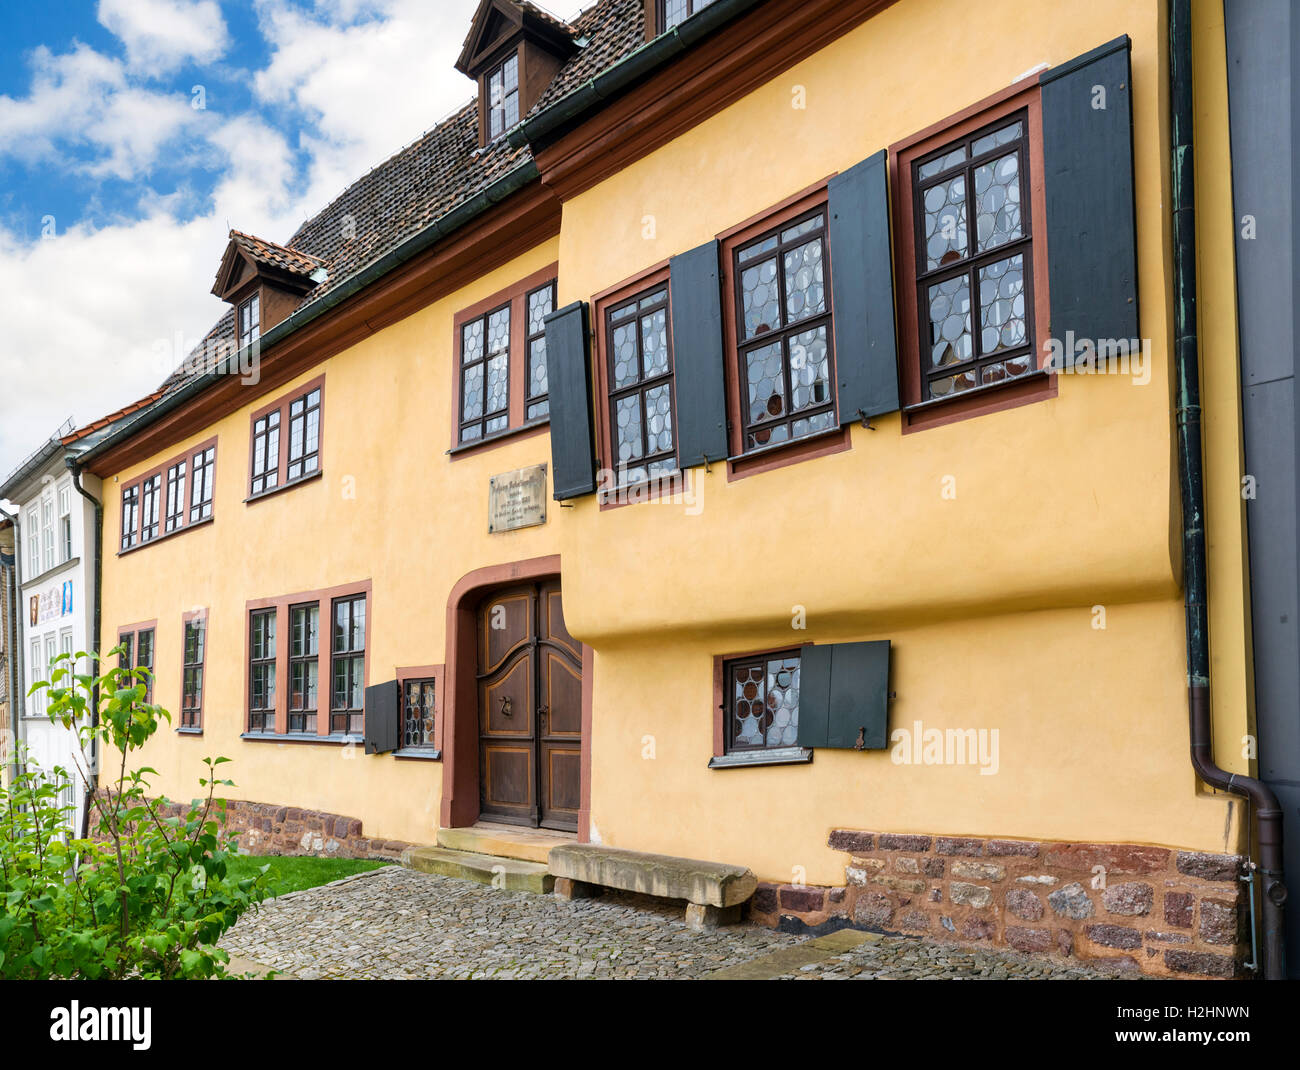 The Bach House in Eisenach, Thuringia, Germany - Stock Image